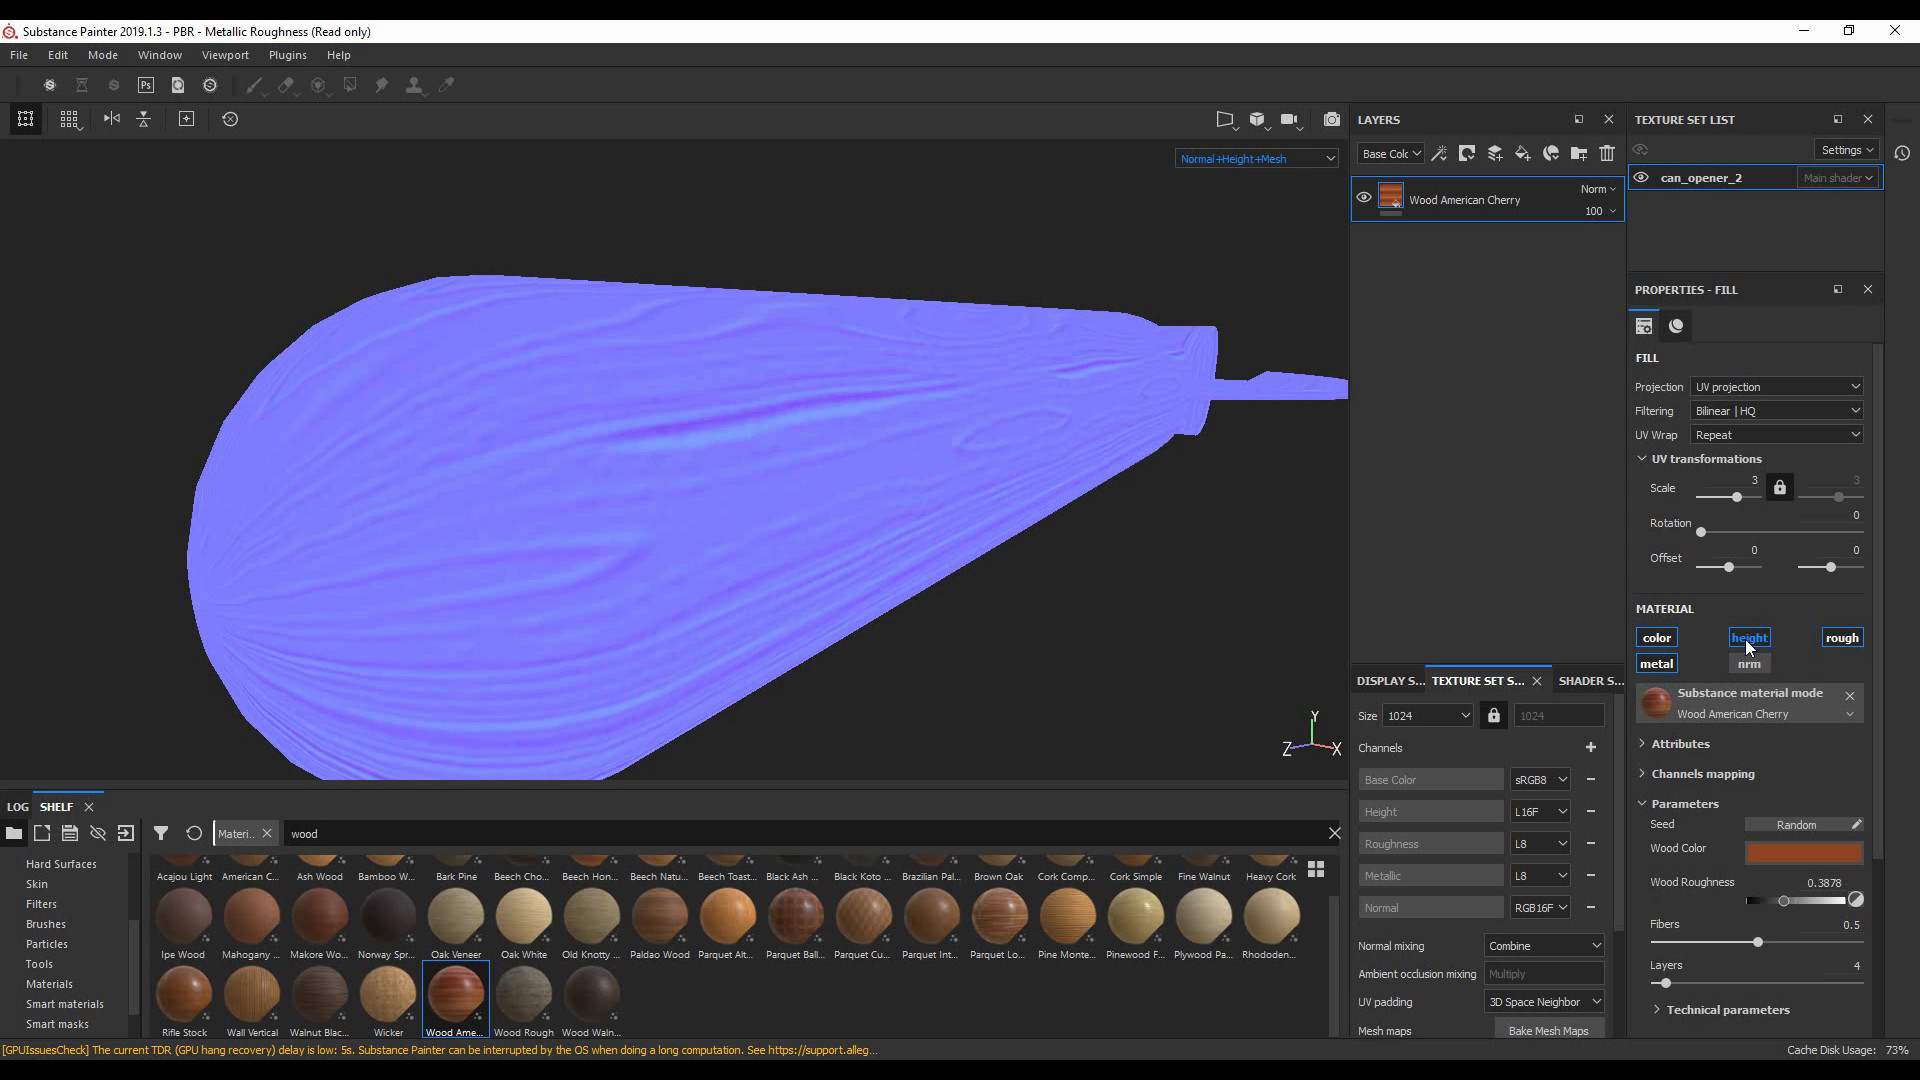 20190923 SP 2019 002 Due materiali in un Texture Set con le maschere 13